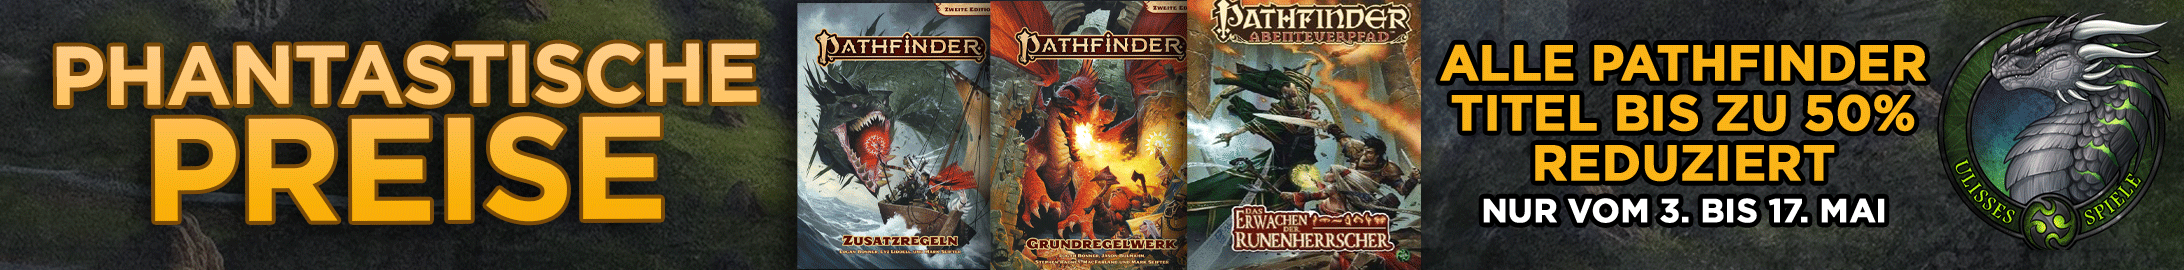 Pathfinder Promotion